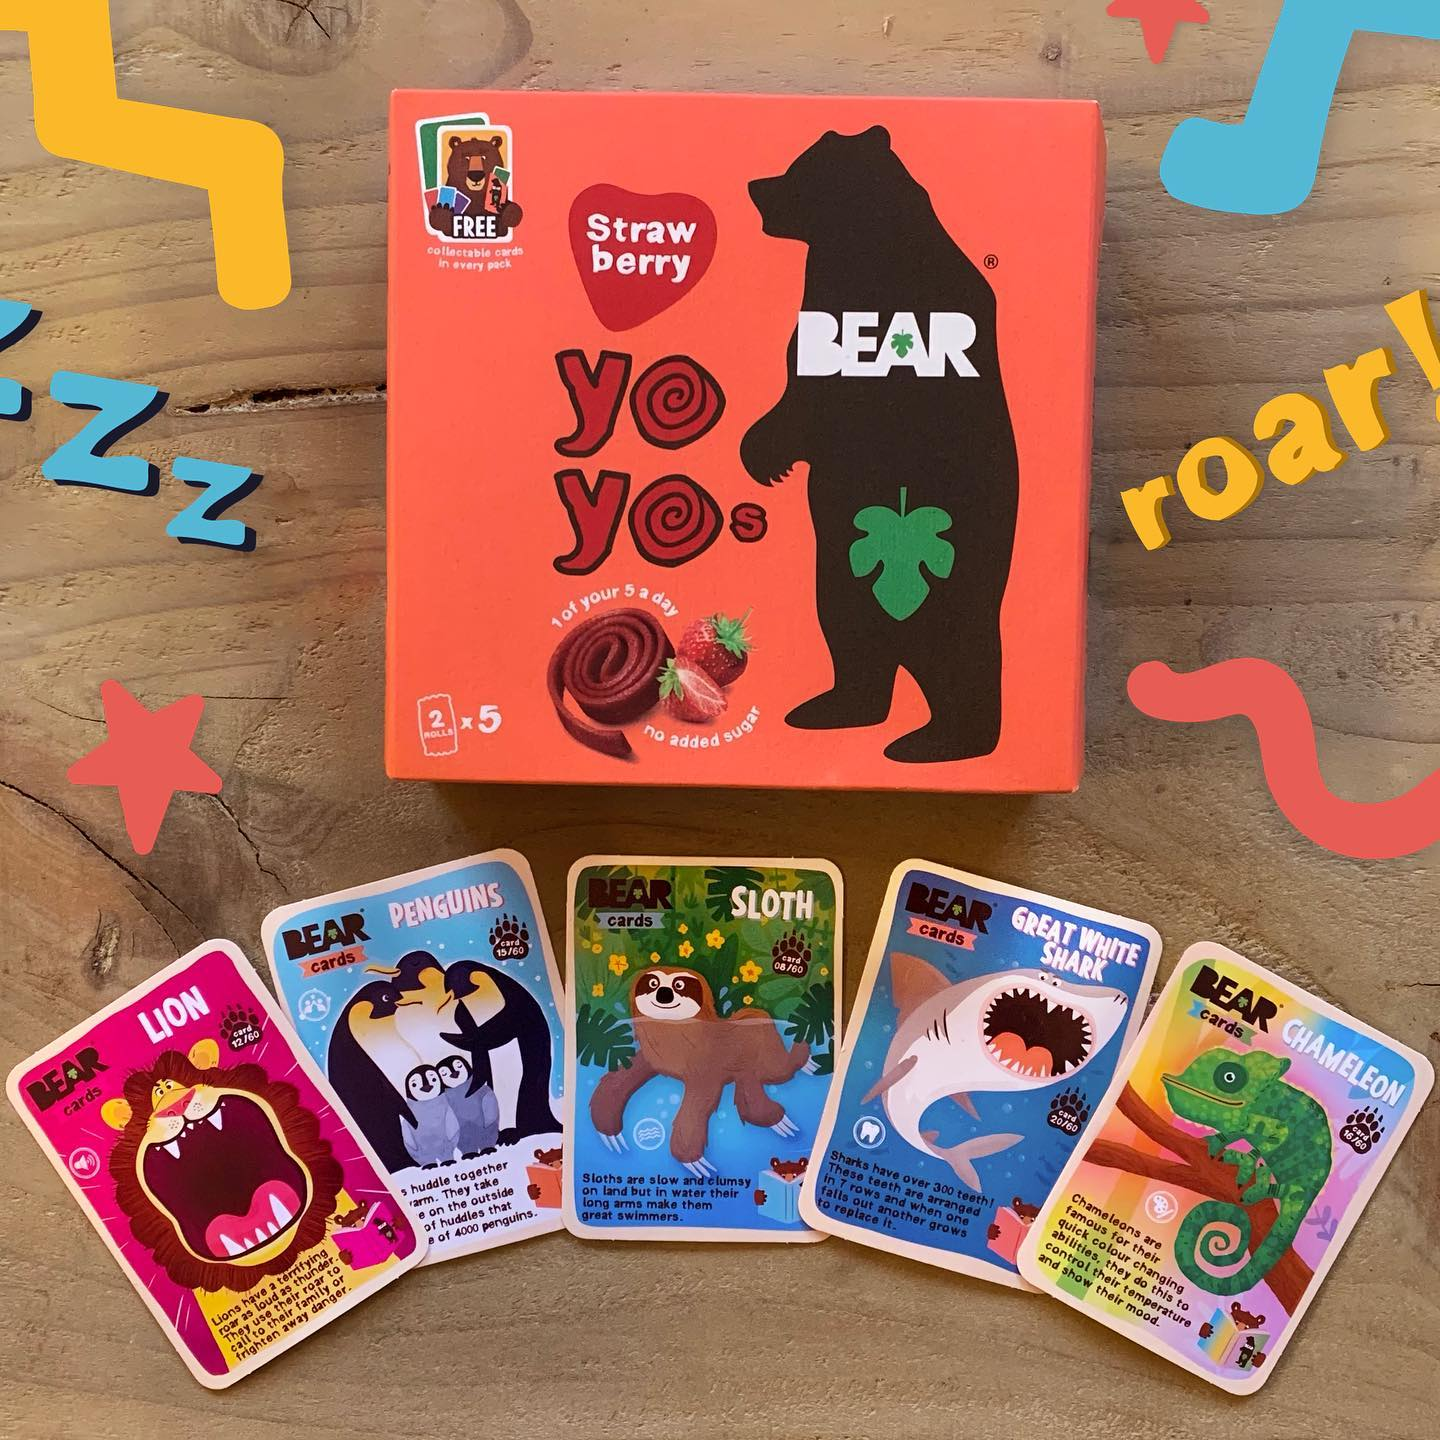 1 BEAR yoyo multipack = 5 BEAR cards! 🦁 🐧 🦥🦈 🦎 ⁣ ⁣ Does your cub have a favourite card yet? And who's already got their paws on our brand new BEAR cards App? 🐻 ⁣ ⁣ 🛒 Our Yoyo multipacks are still o...